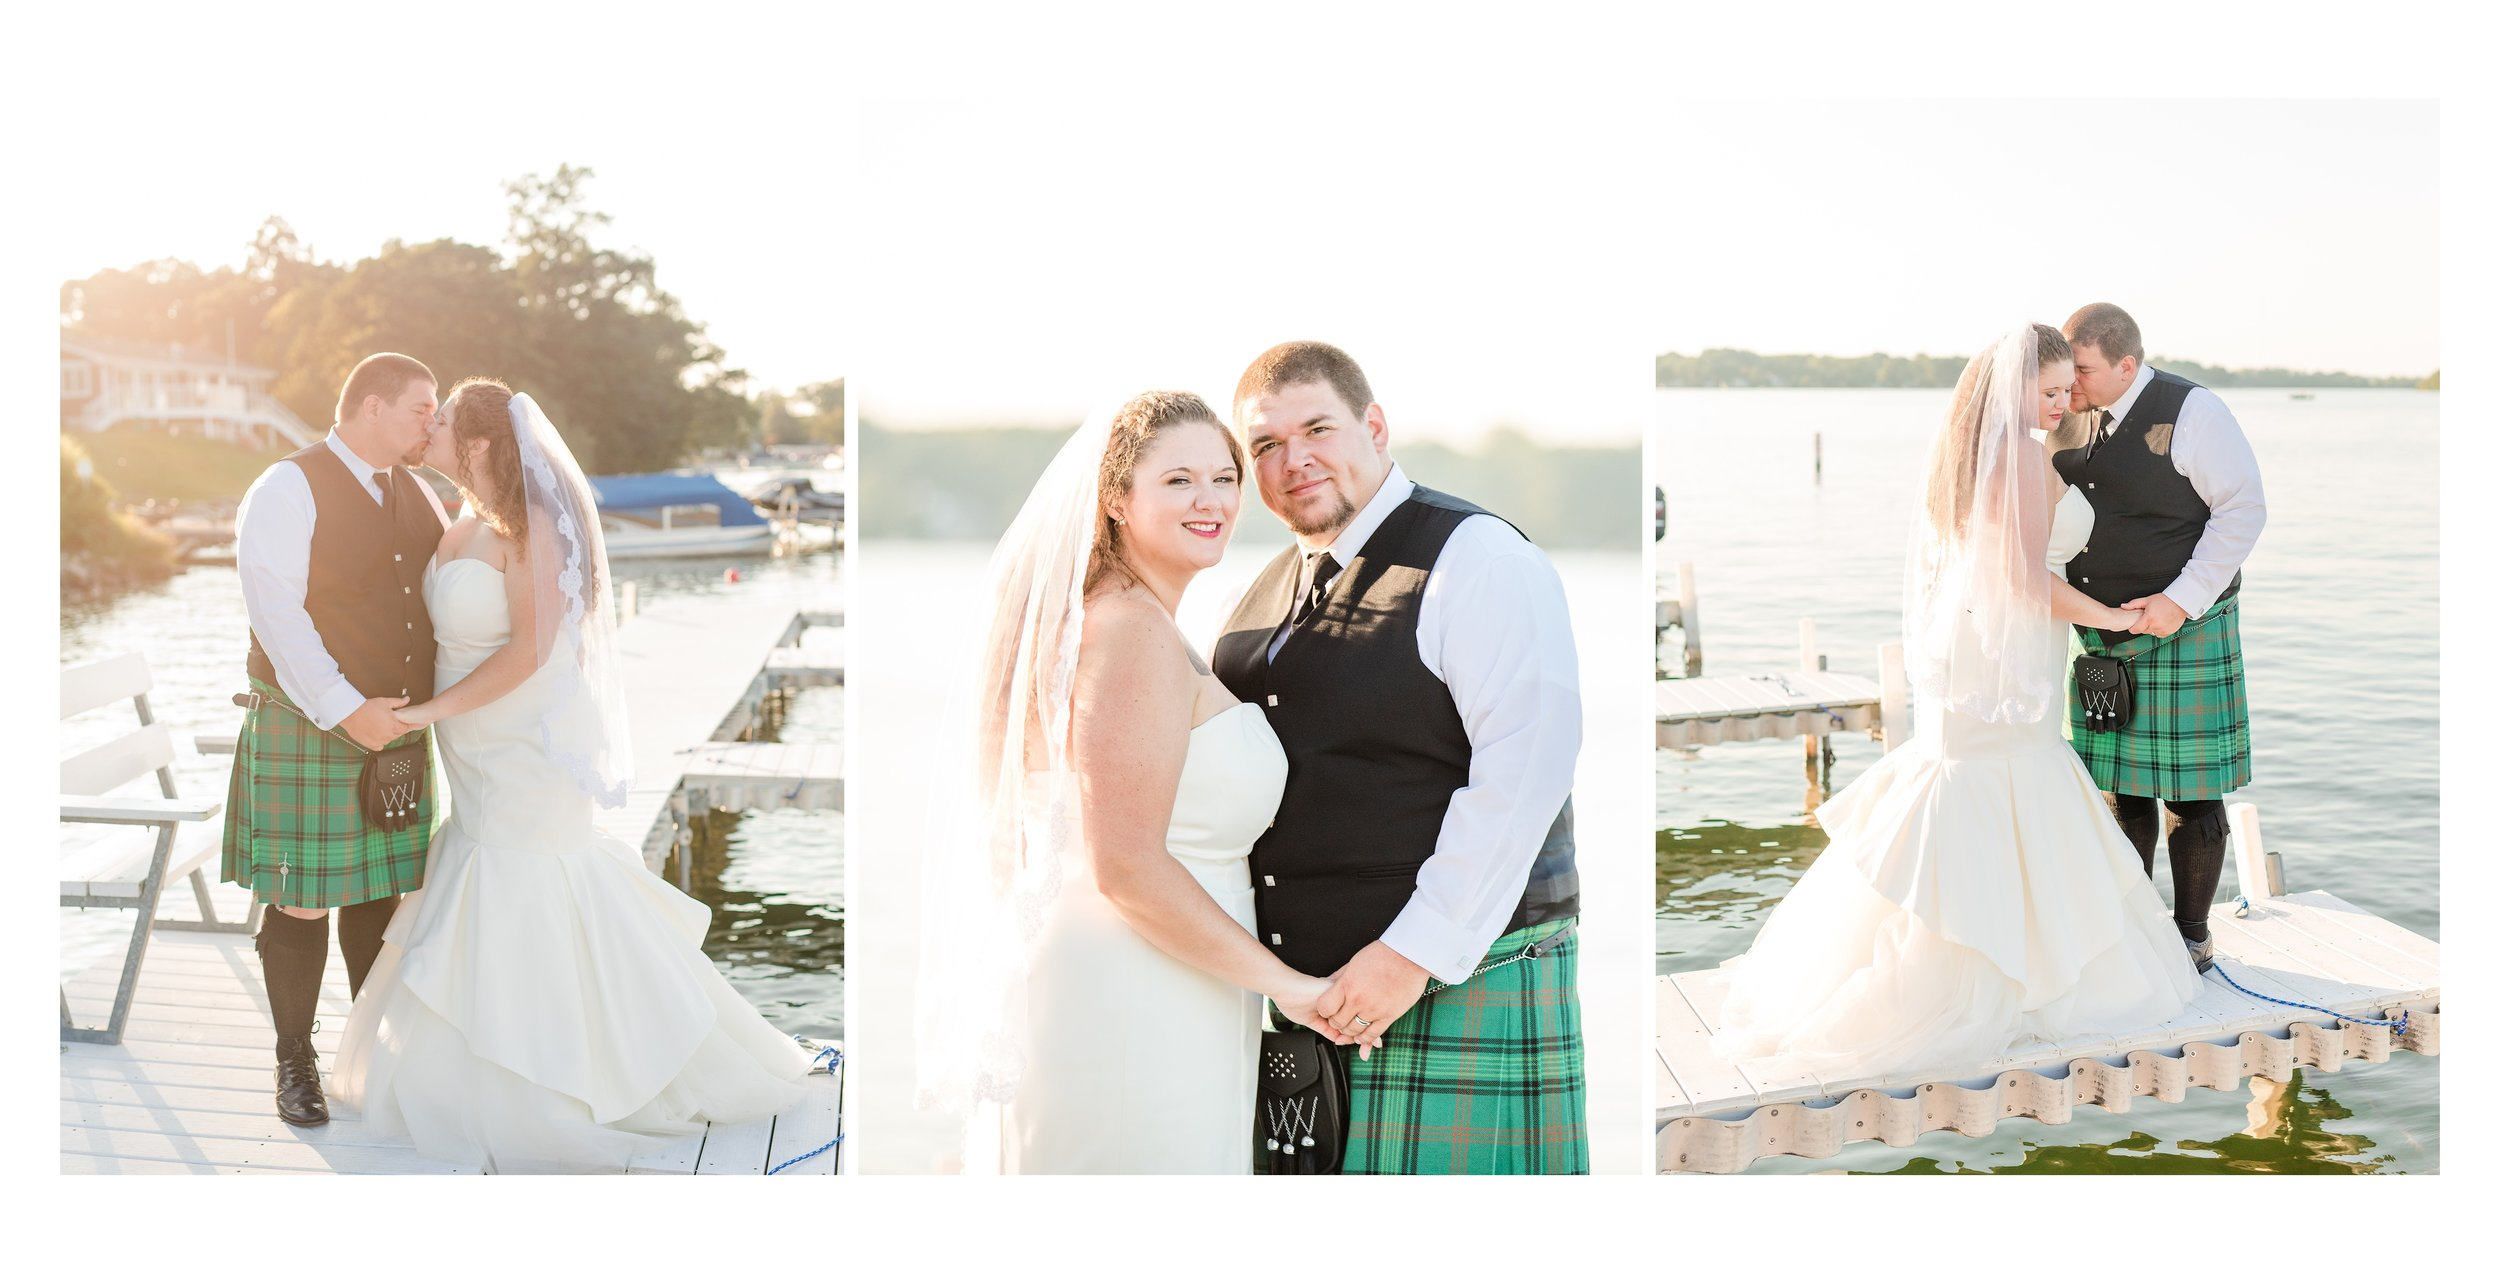 Our_Wedding_Album_12x12_-_30_pages_33.jpg